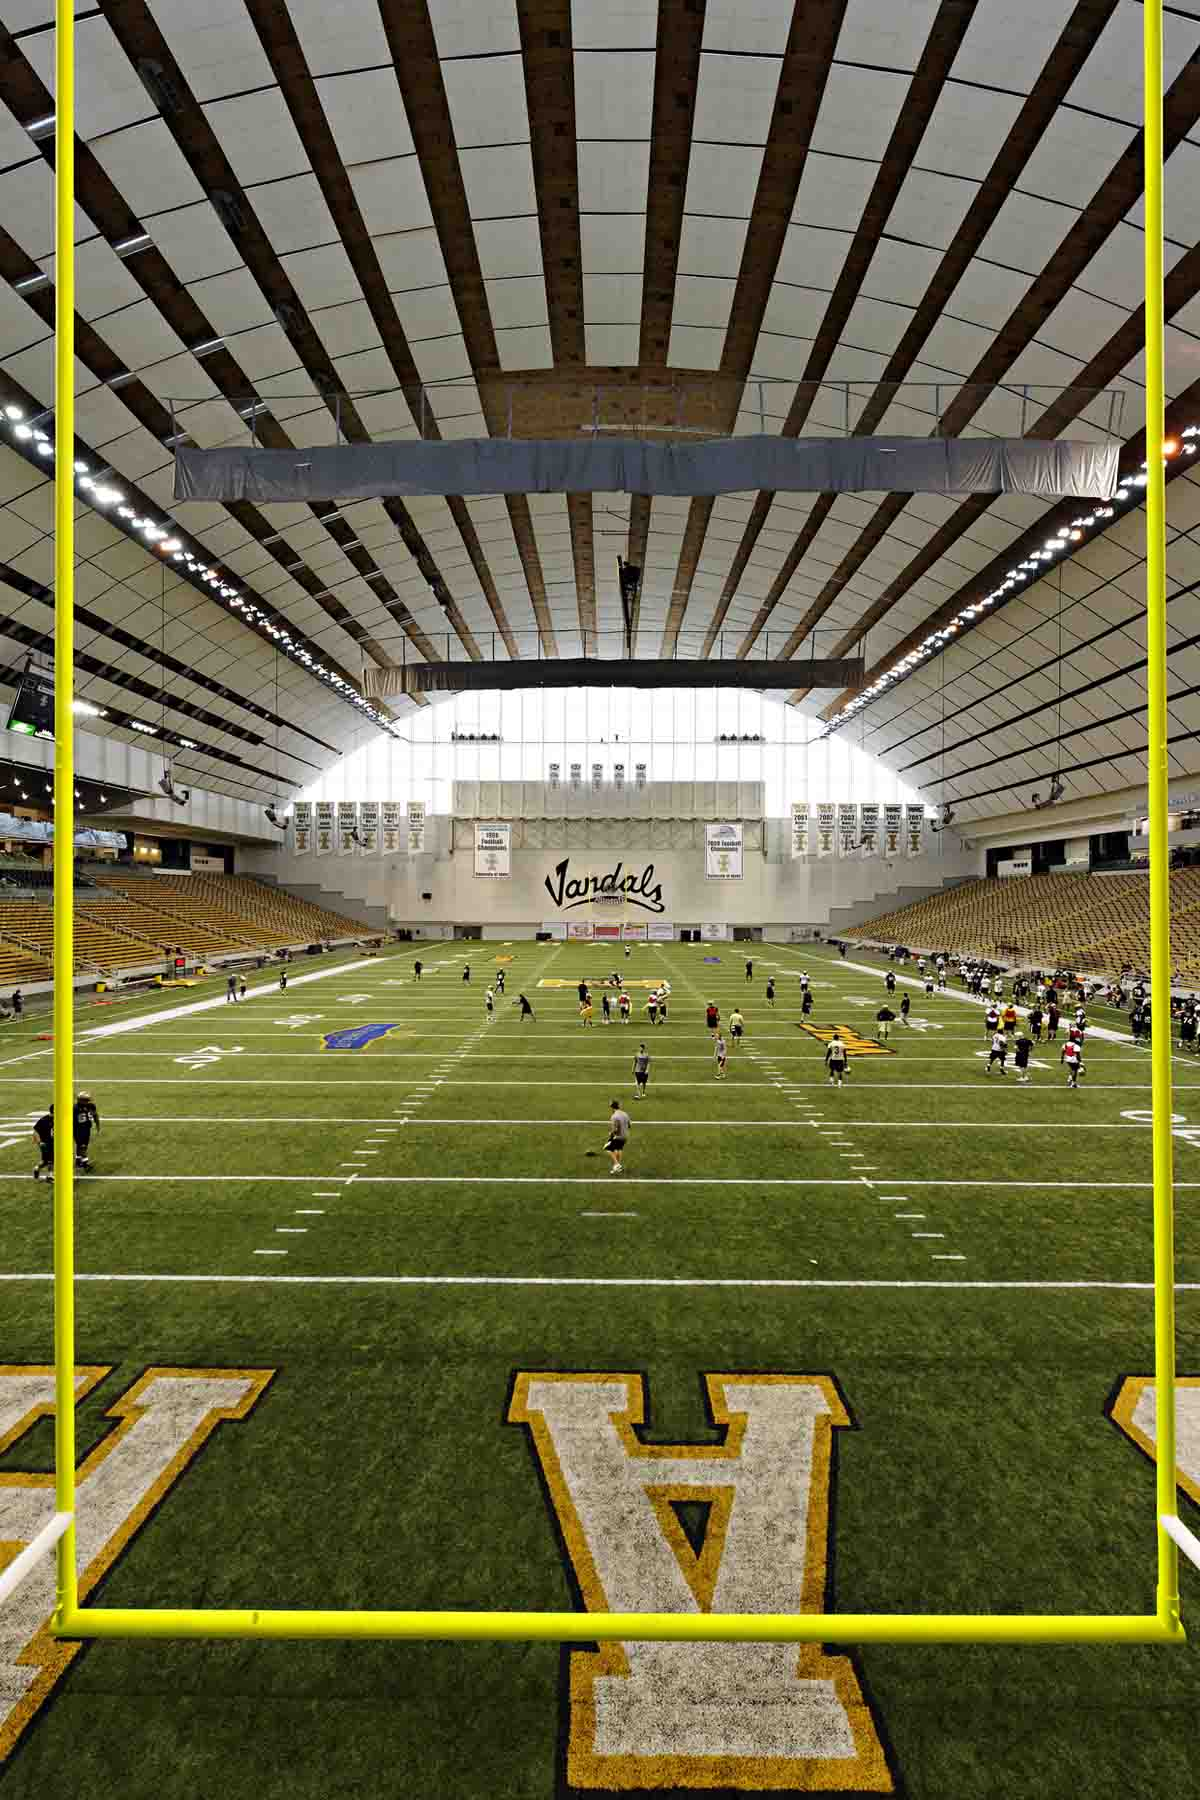 University of Idaho<br/>Kibbie Dome Renovation